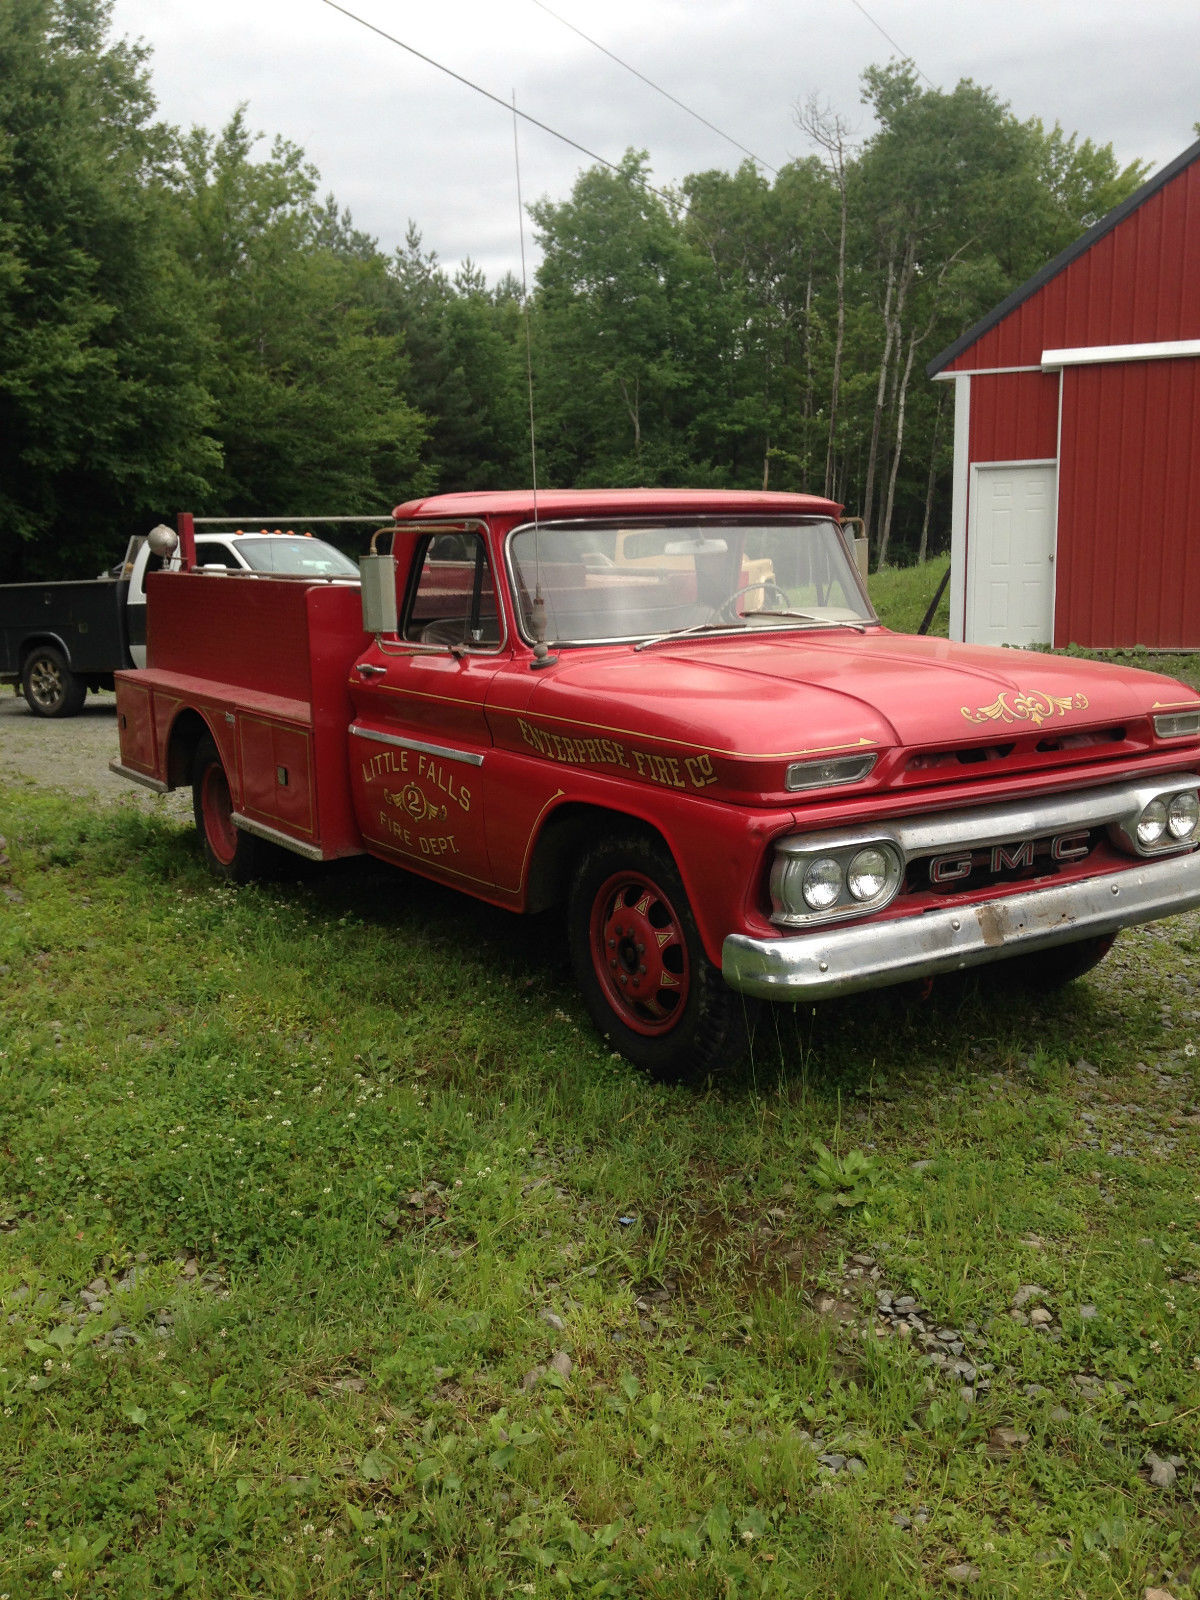 1966 GMC One Ton Utility Fire Truck Bill of sale only ...